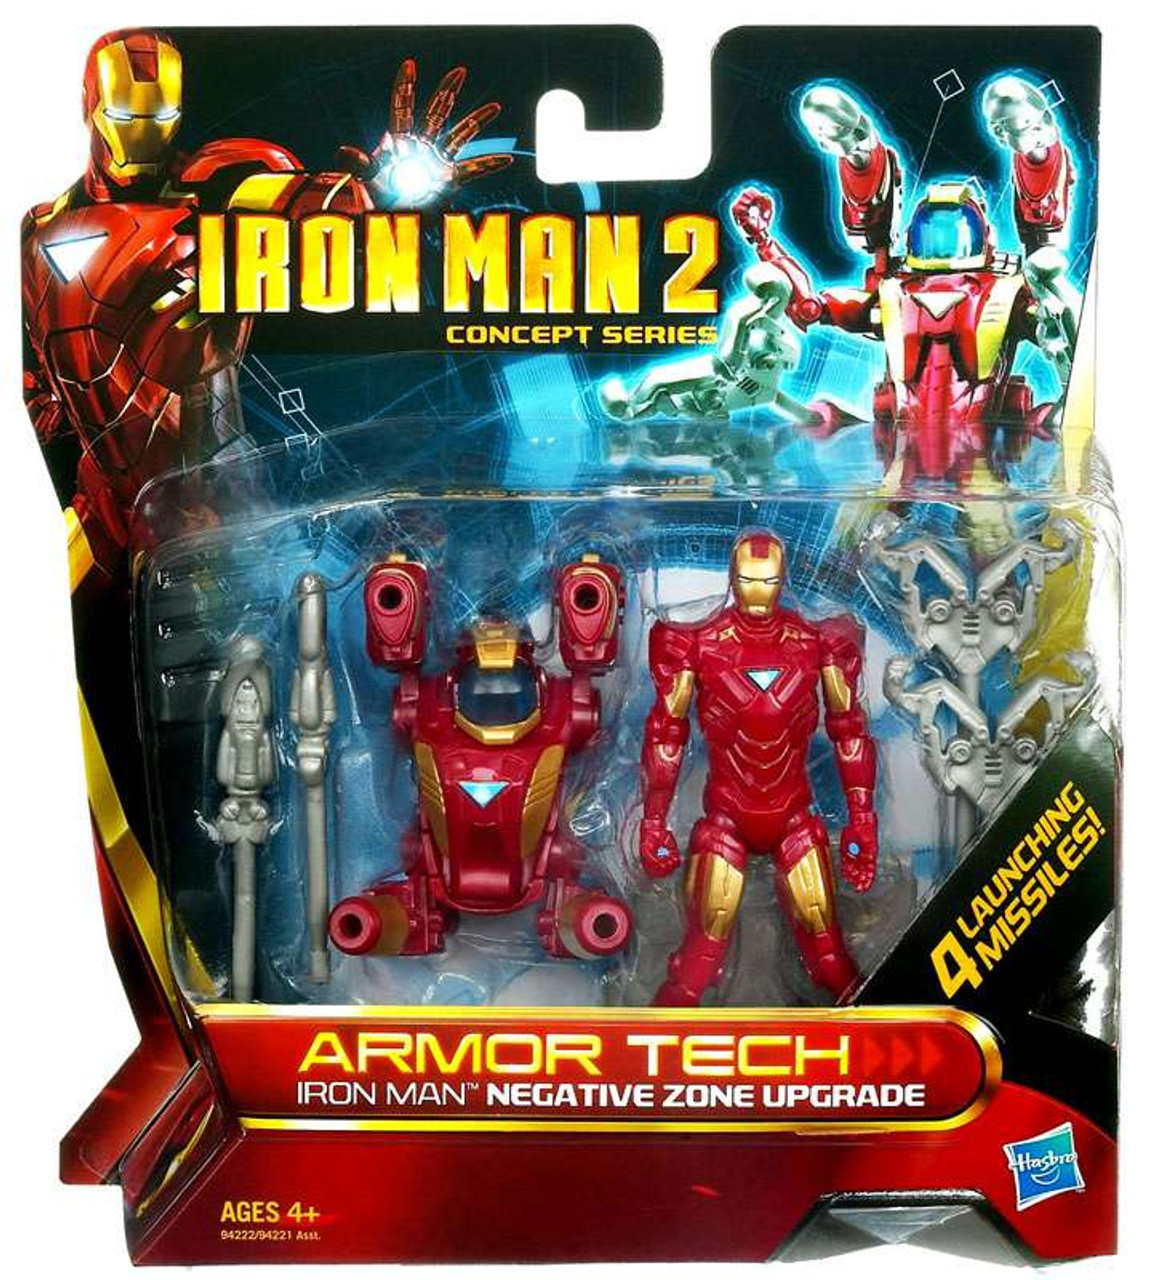 Iron Man 2 Concept Series Armor Tech Iron Man Negative Zone Upgrade Action Figure